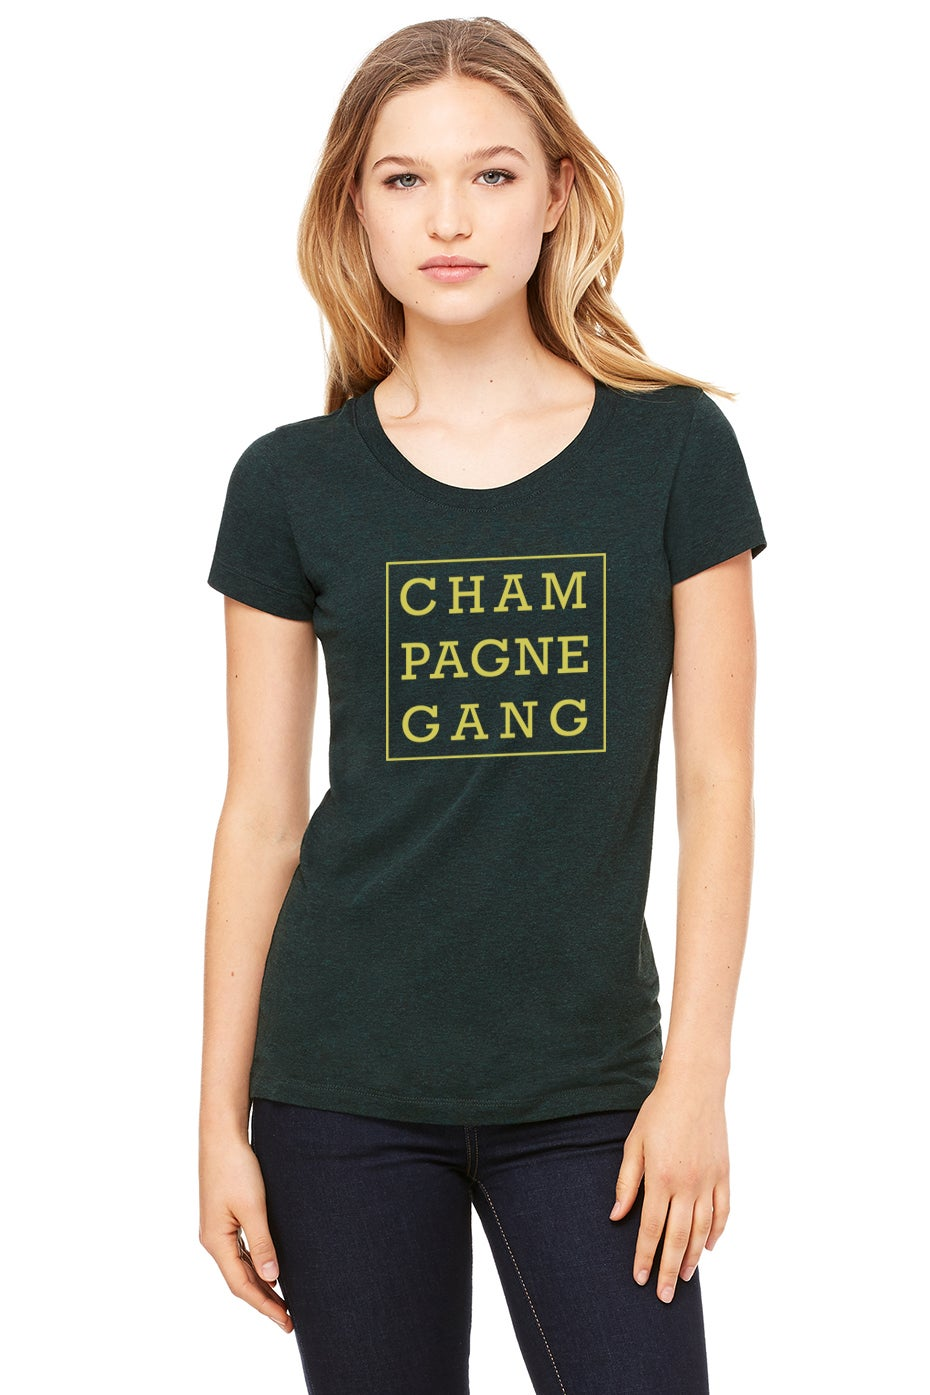 Image of Champagne Gang Triblend Tee